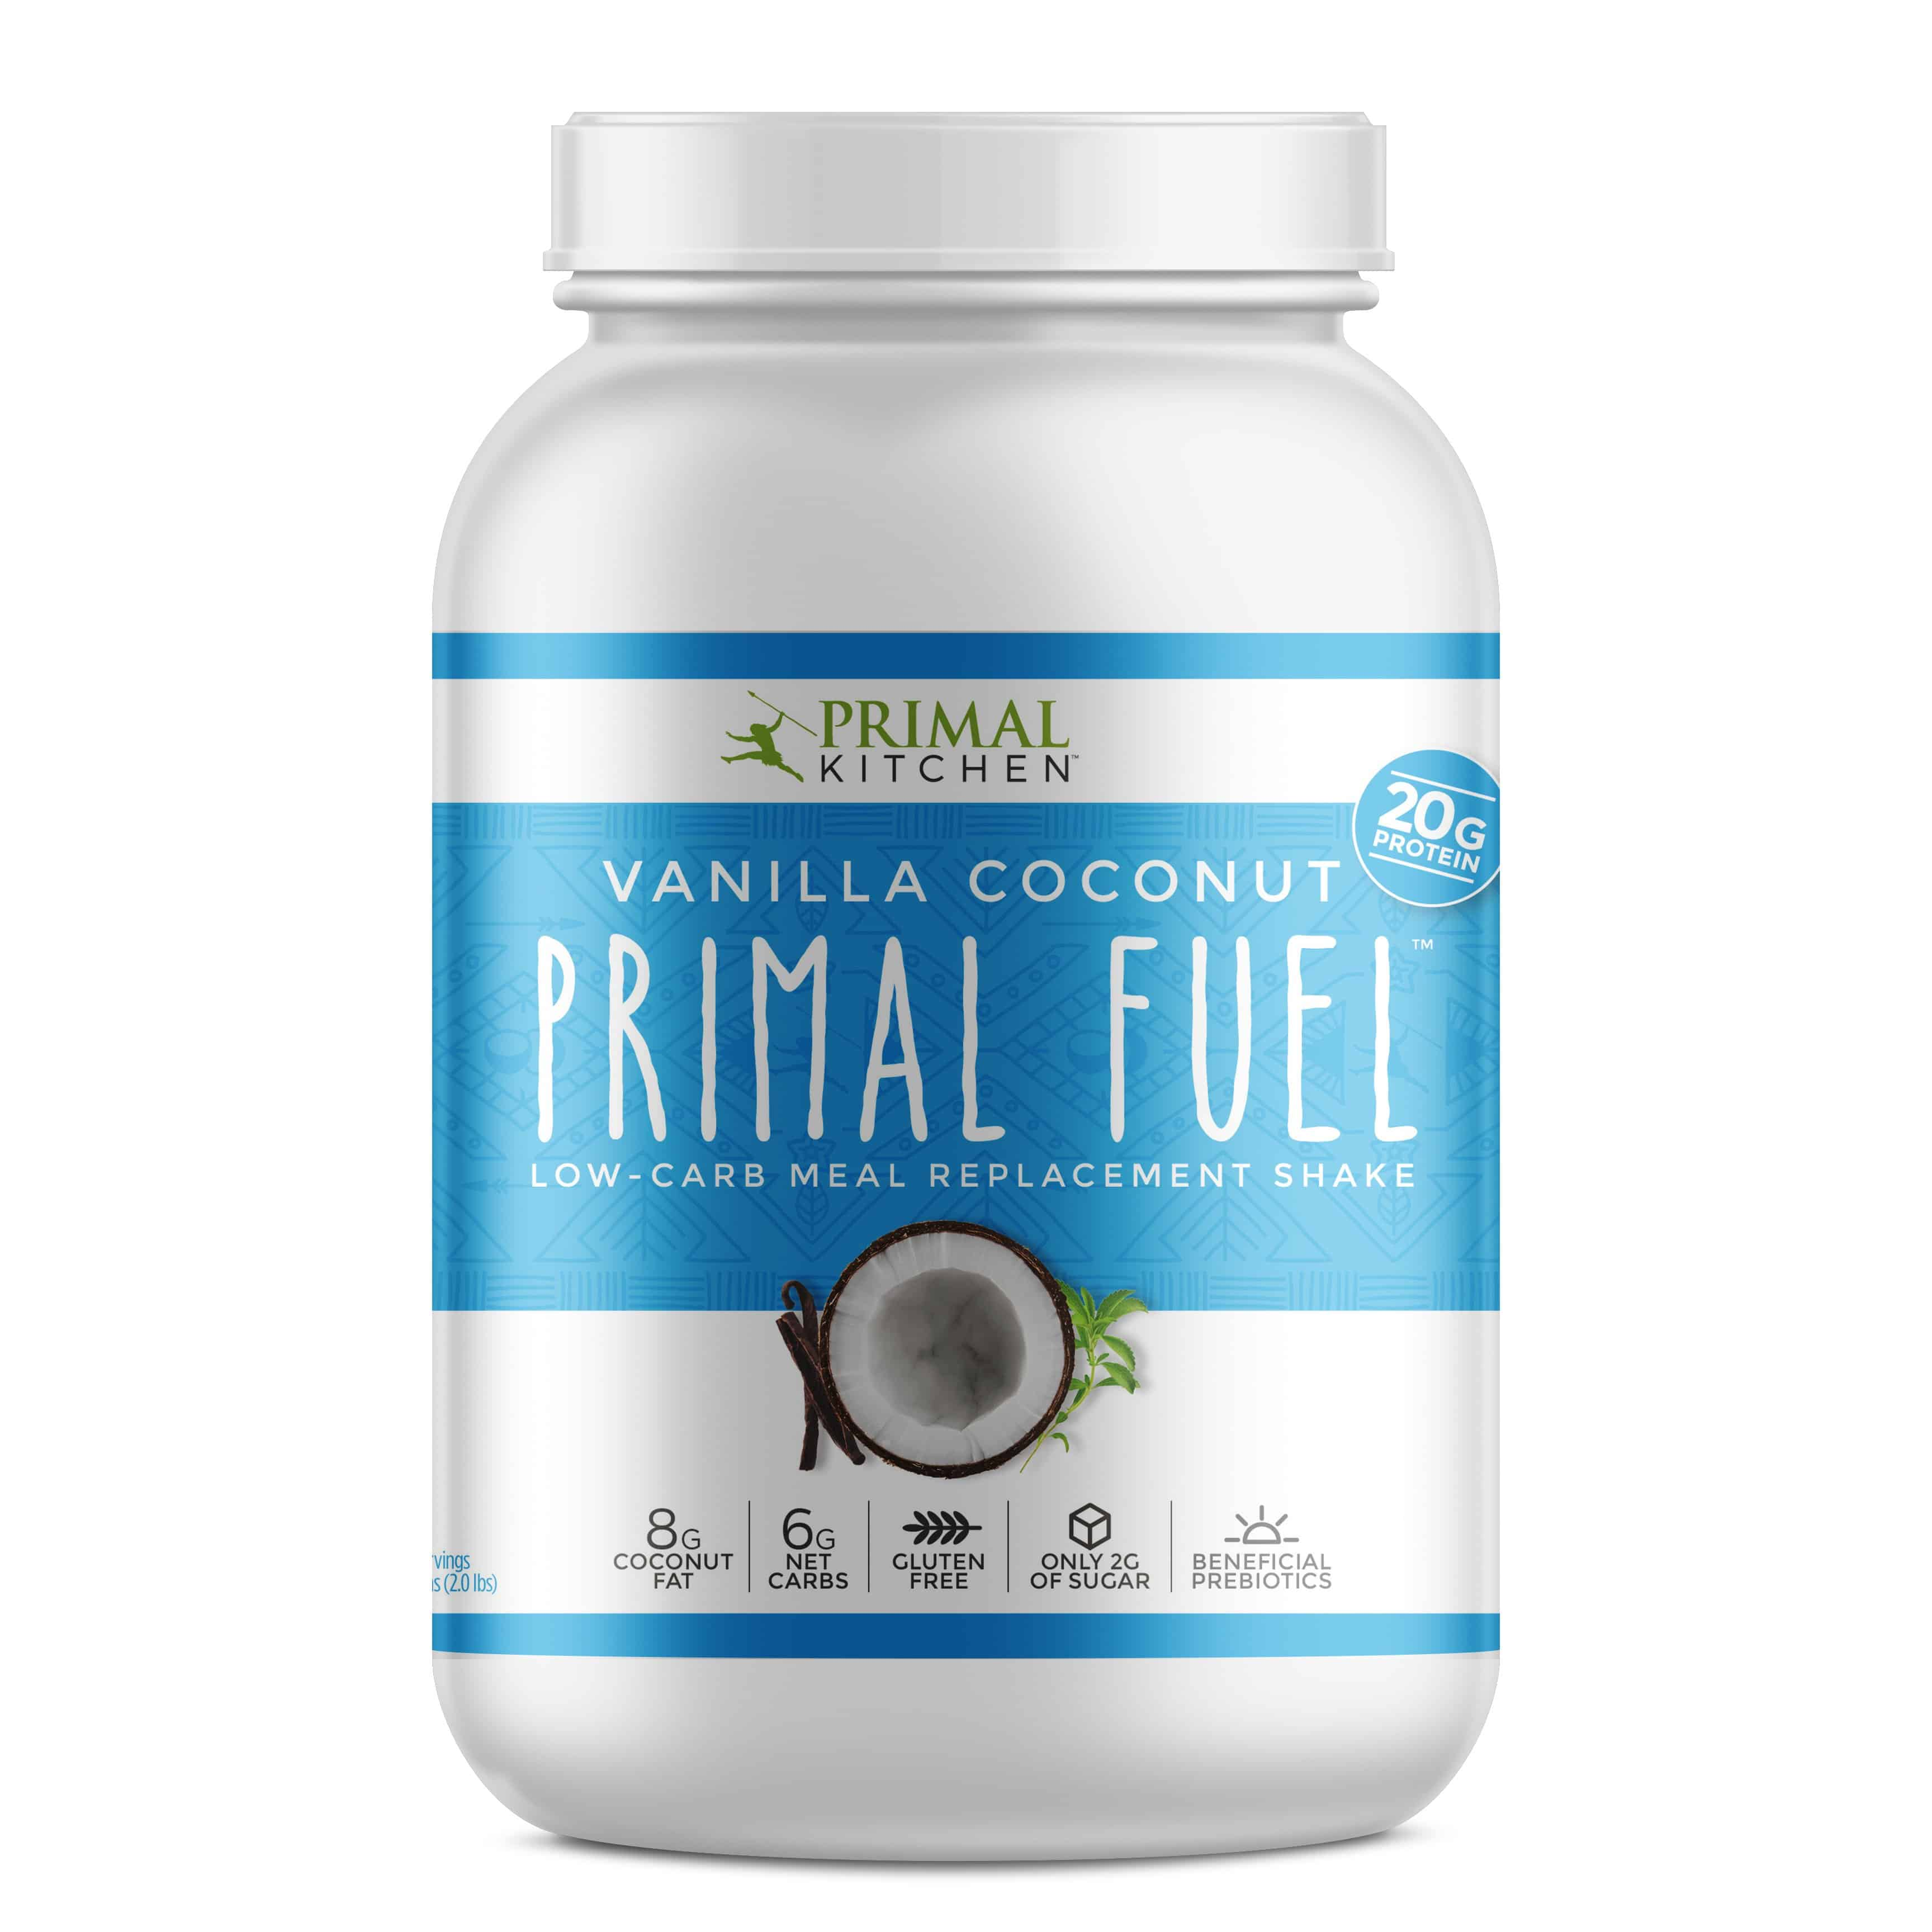 Primal Kitchen Protein Powder Review: Is It Any Good?